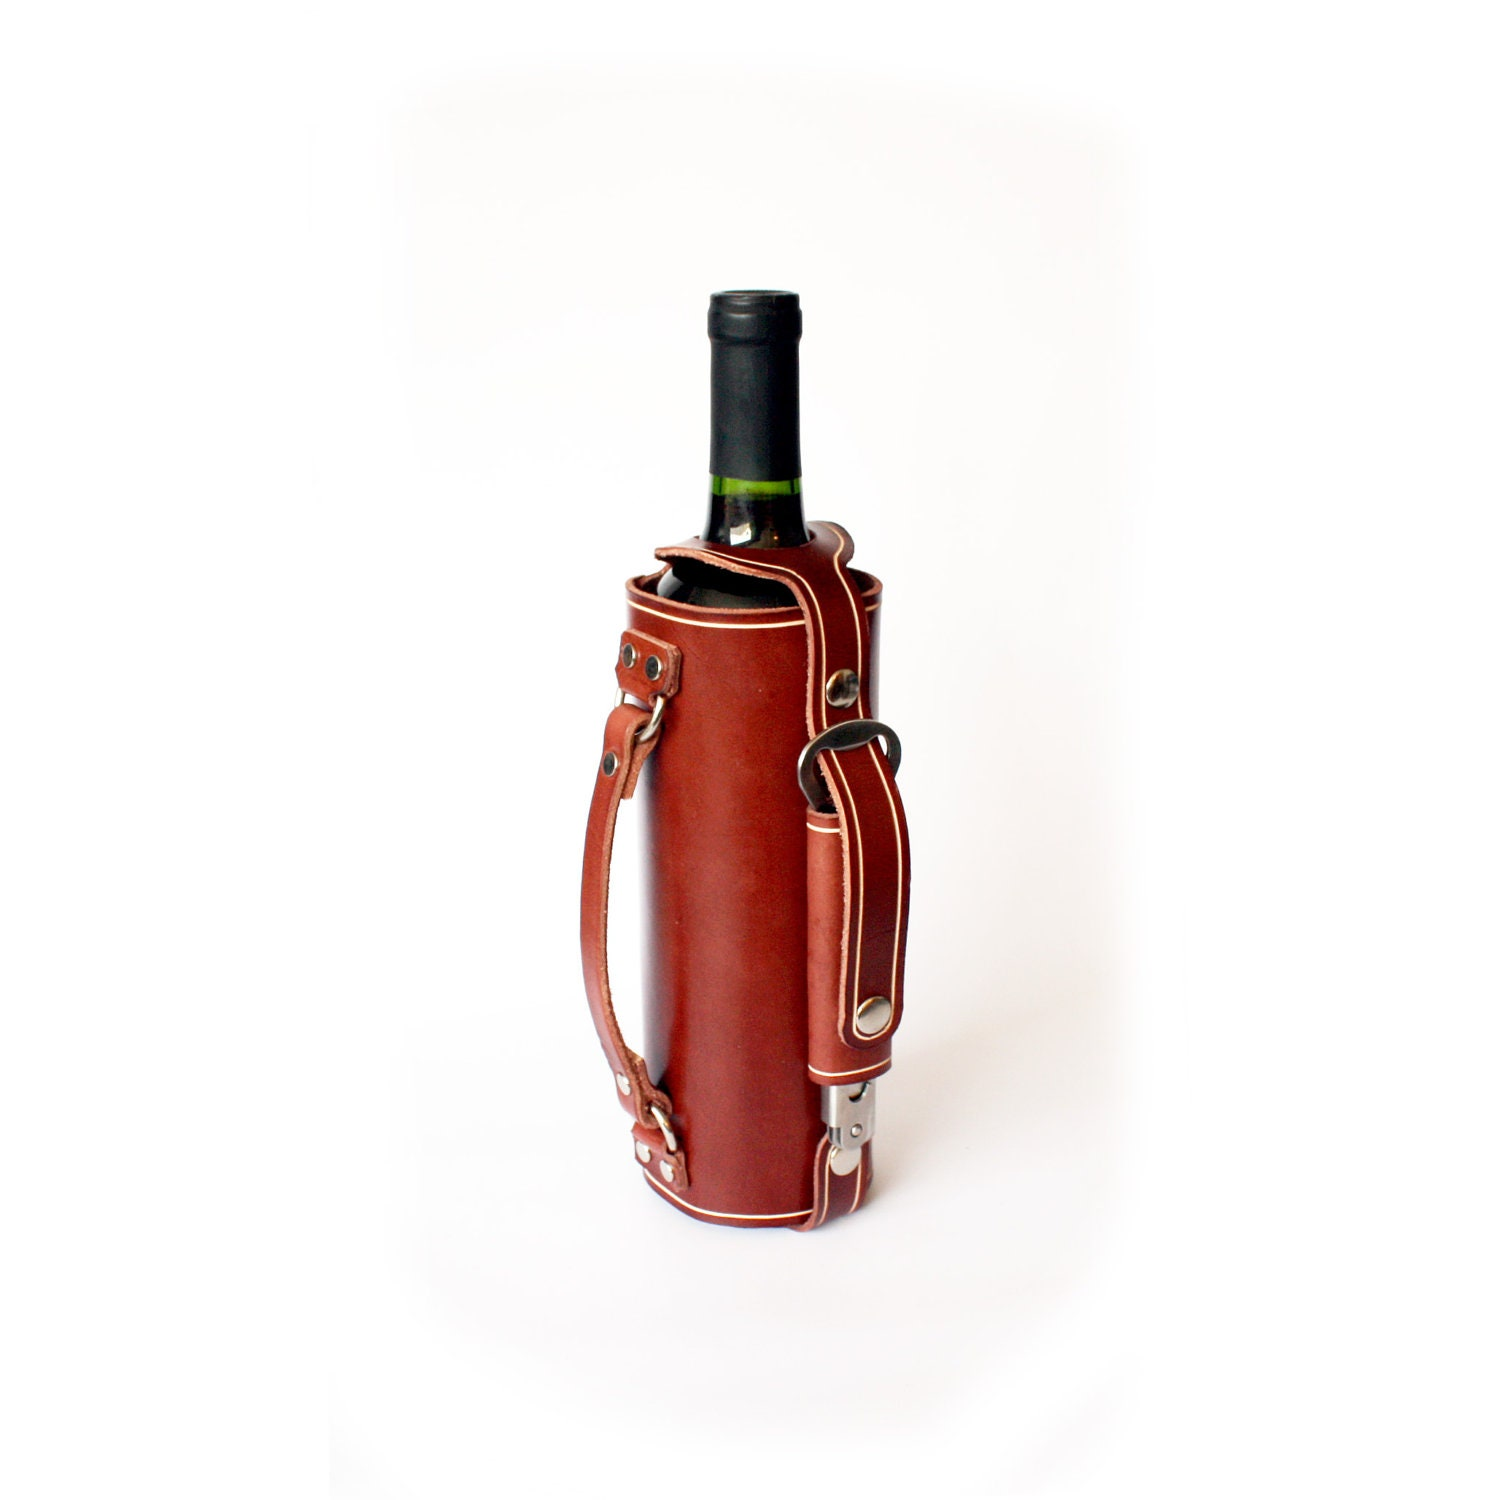 Leather Wine Bottle Holder With Stainless Steel Opener And